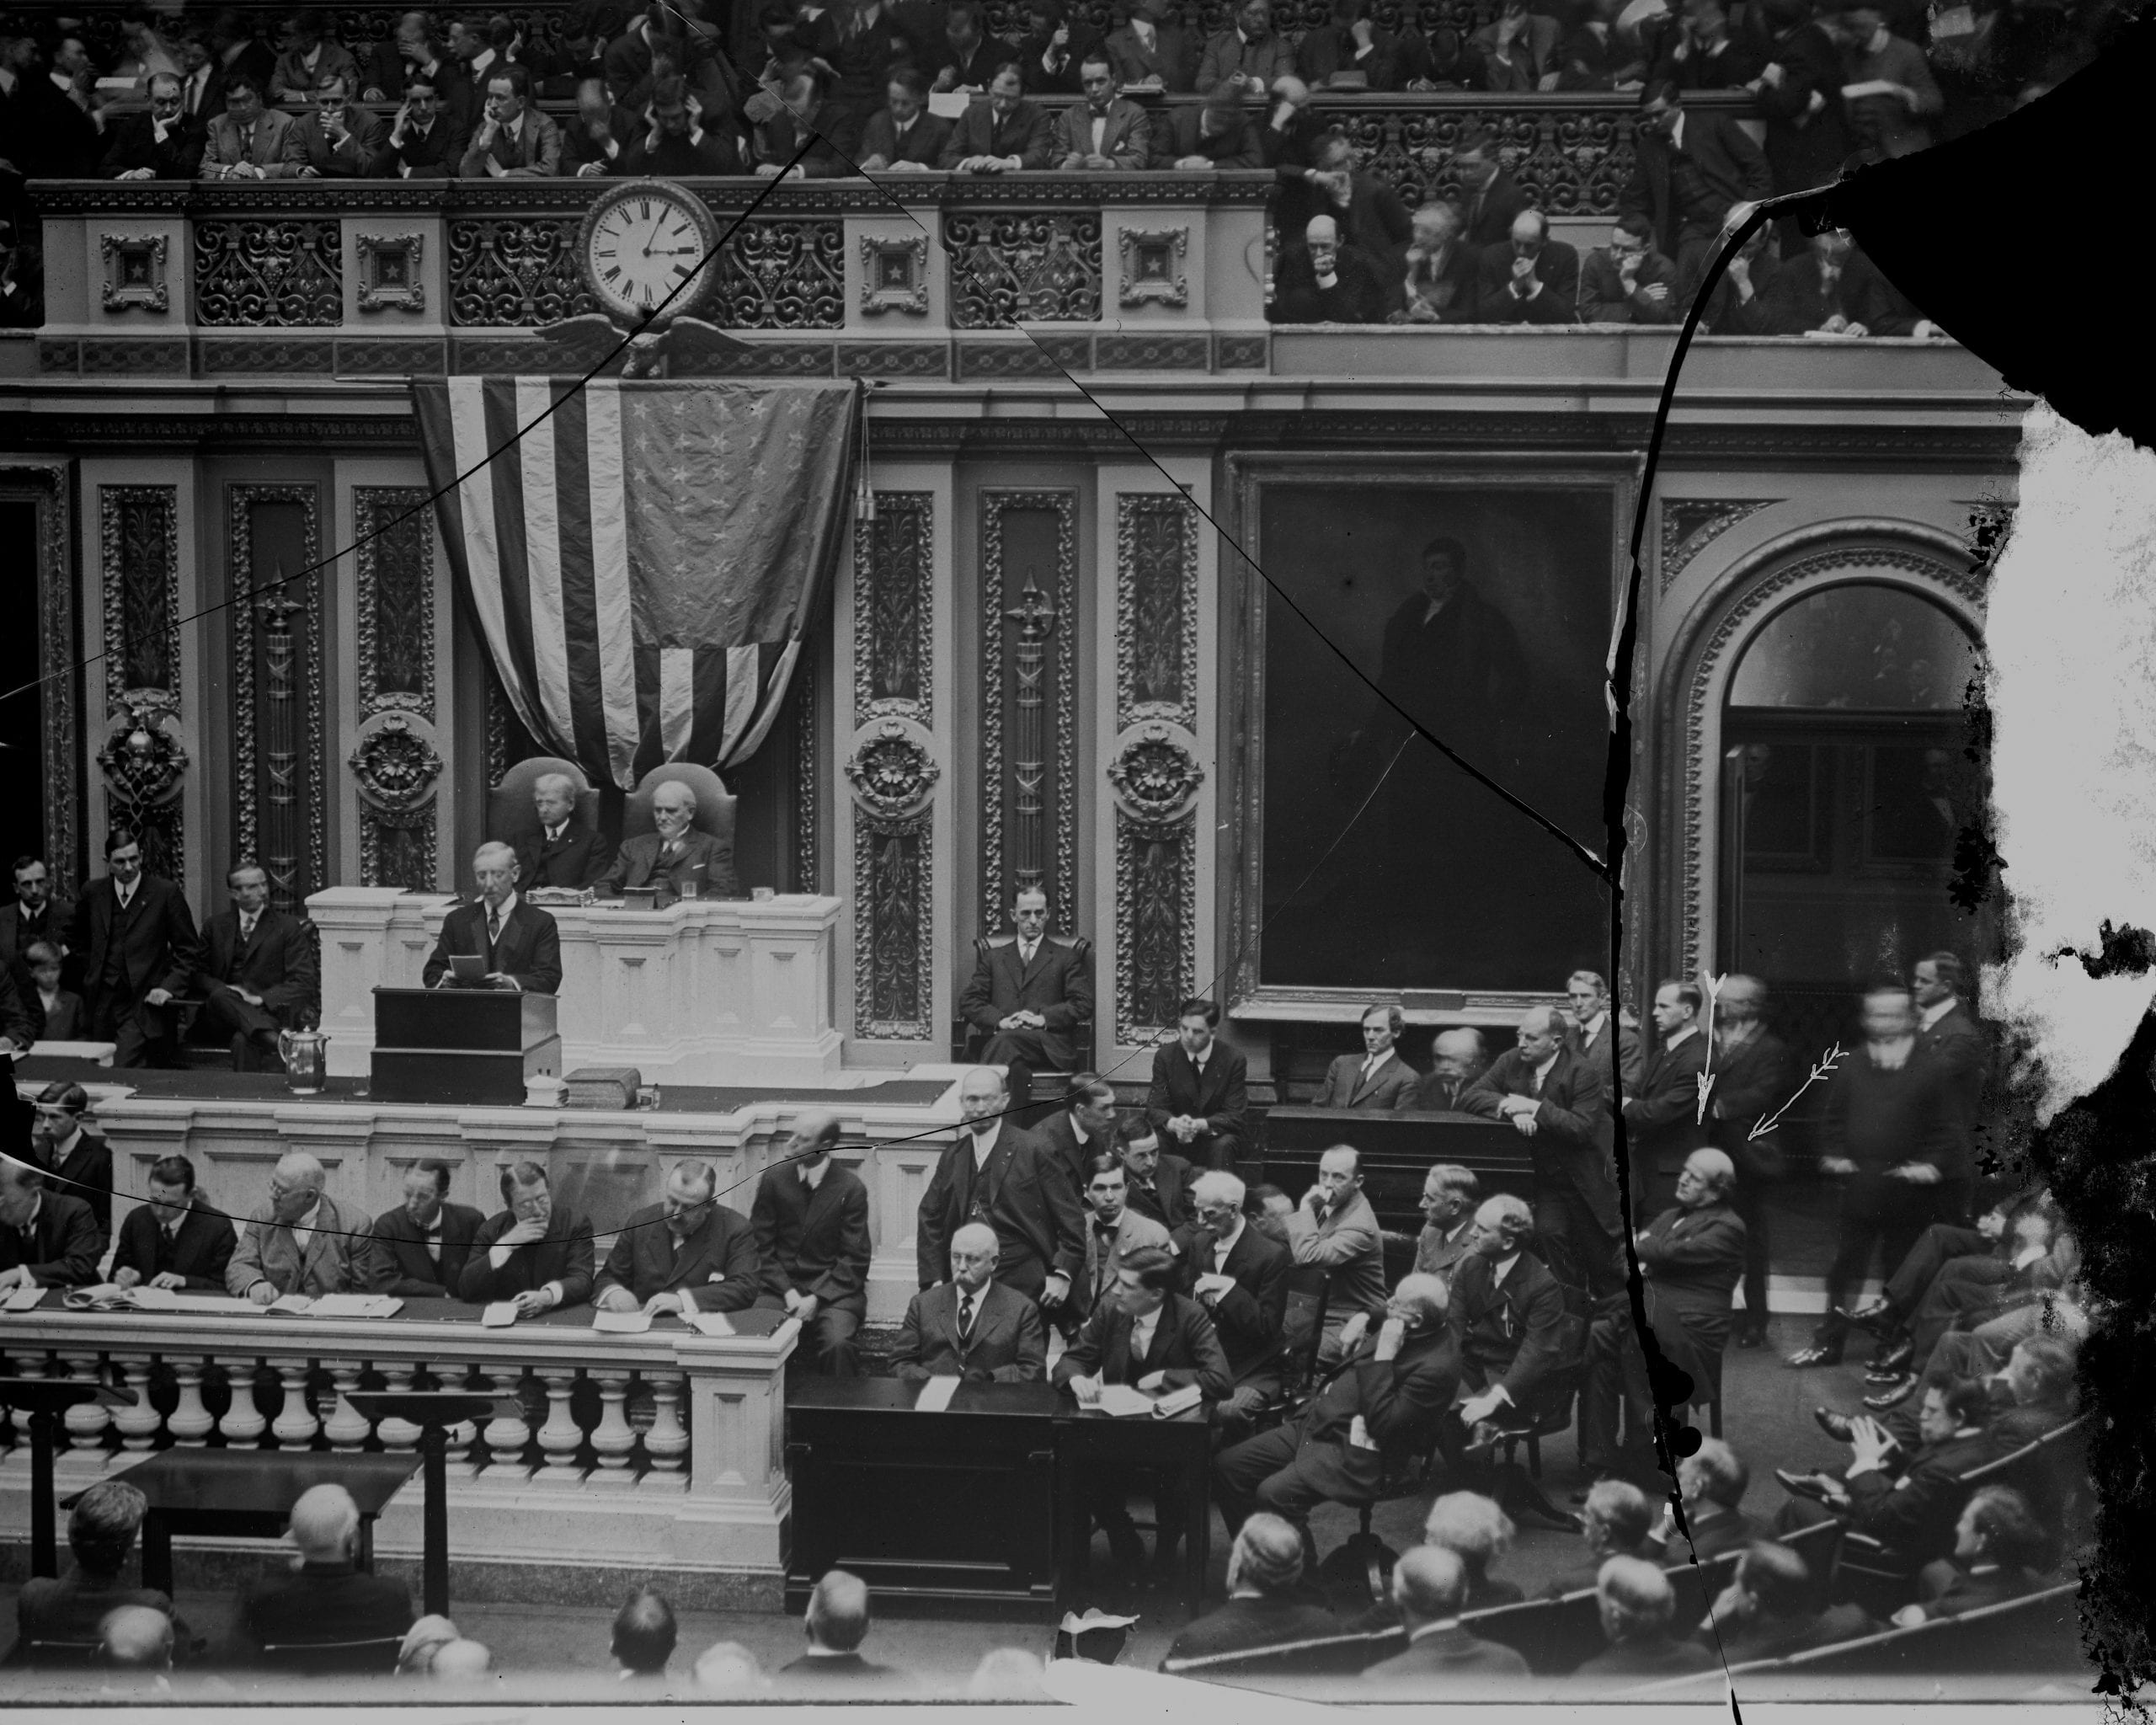 Woodrow Wilson's 1913 State of the Union